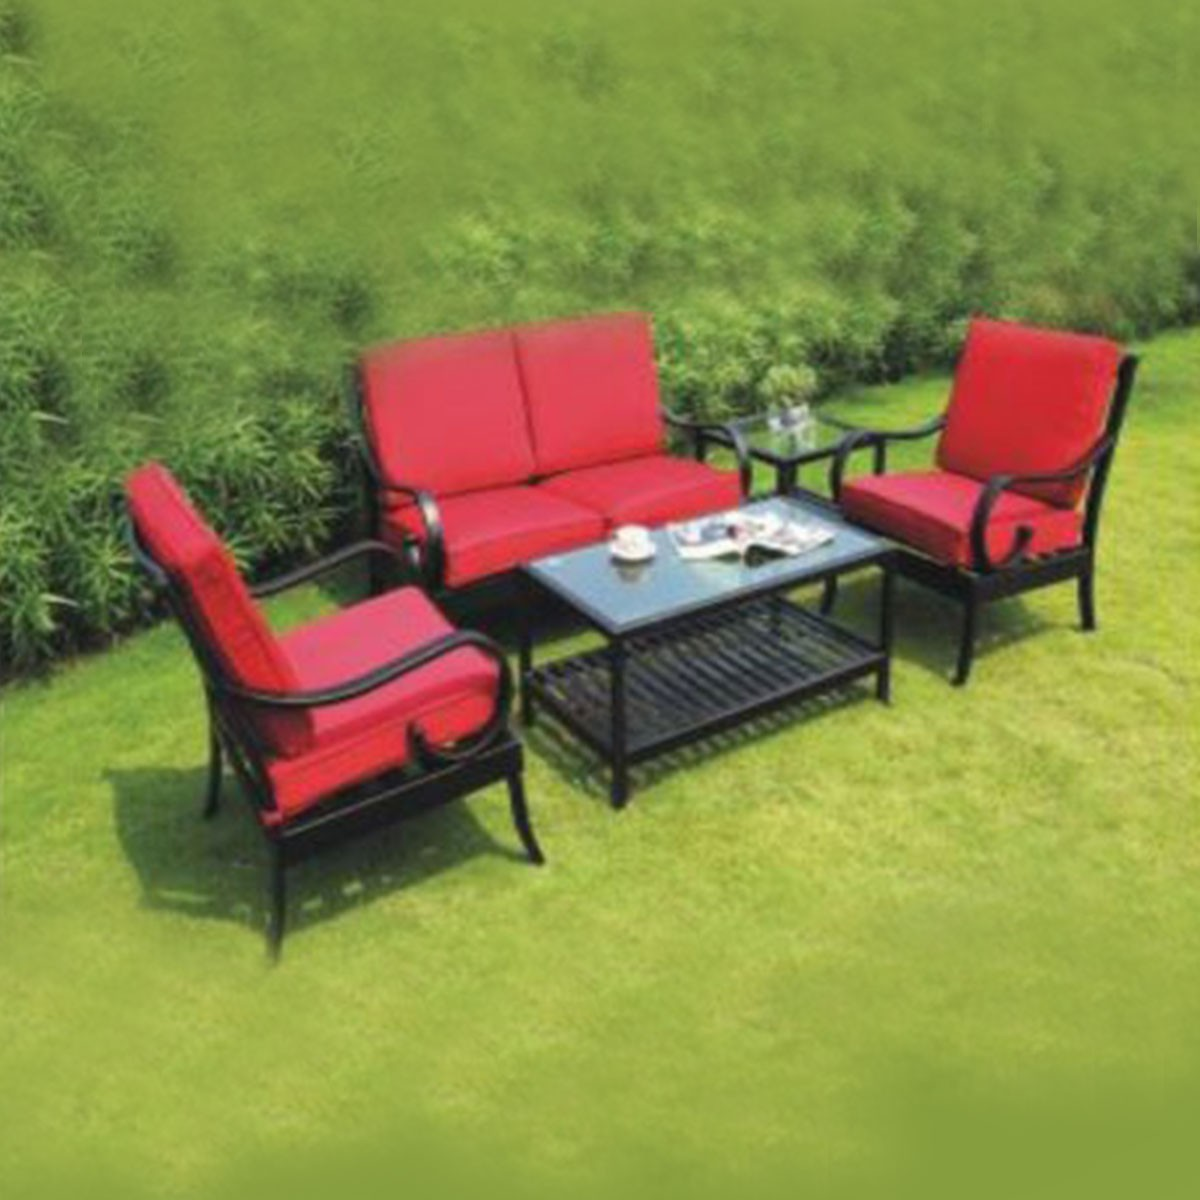 5 Pieces Dinning Set: Coffee Table, 2 Chairs, Loveseat, End Table (LLS-CA032)